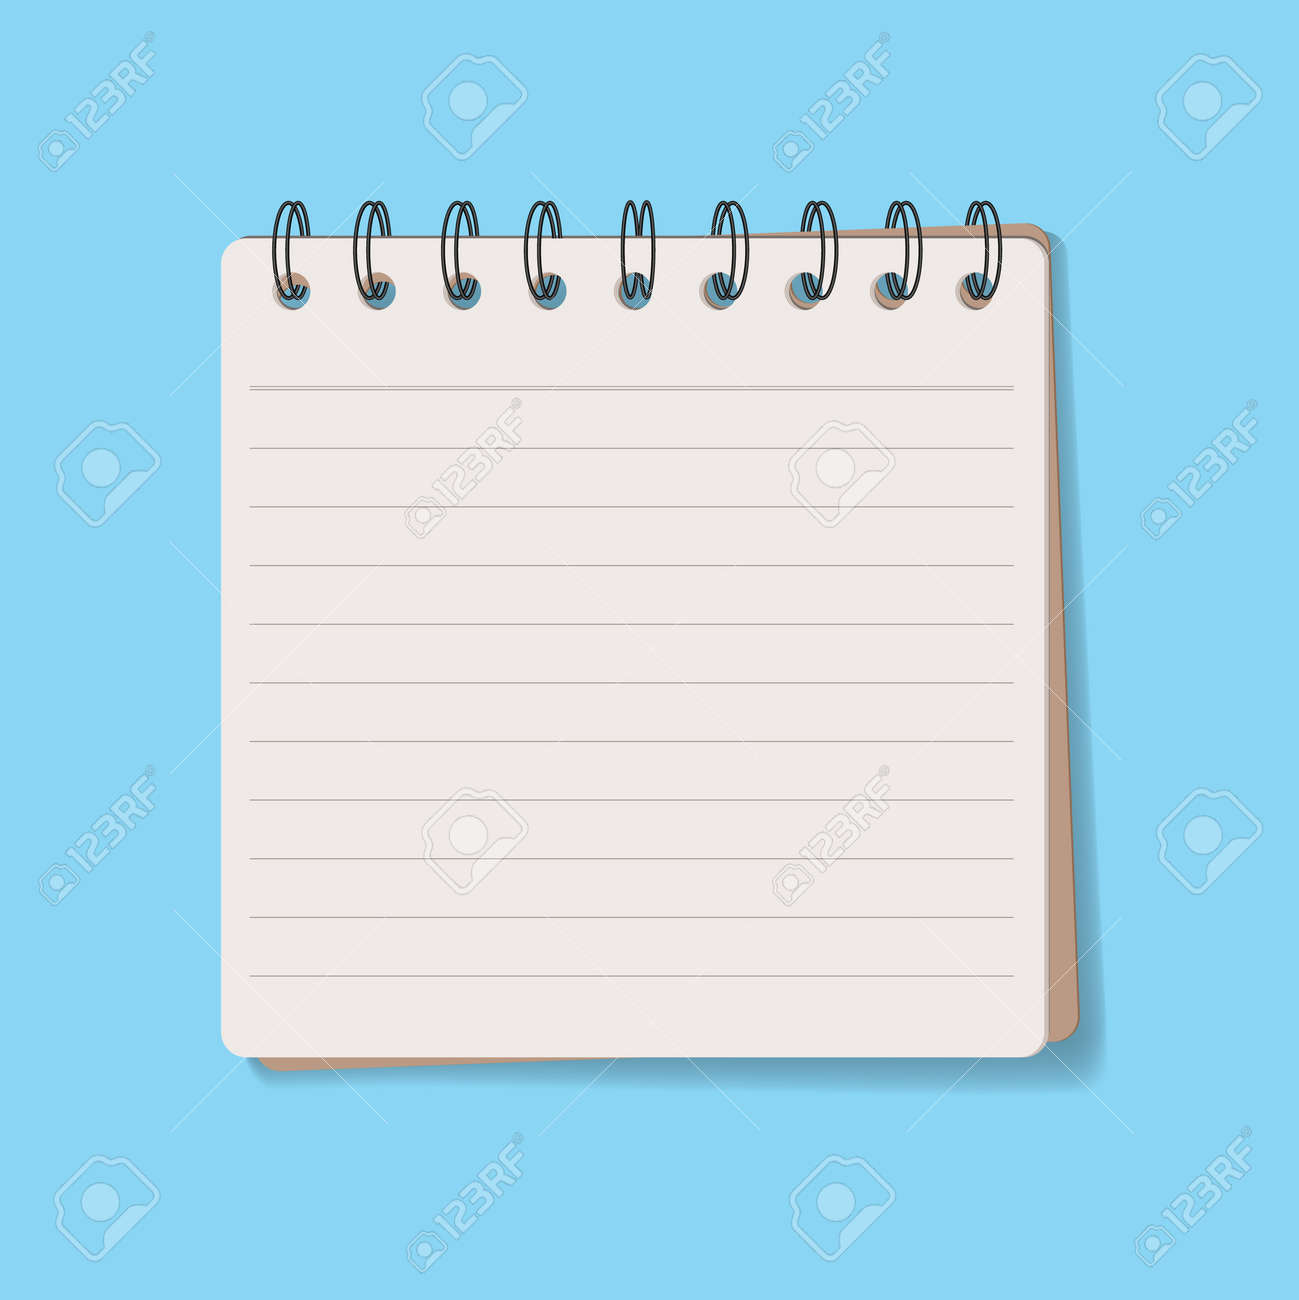 notebook brown cover on blue background vector art illustration - 171190835